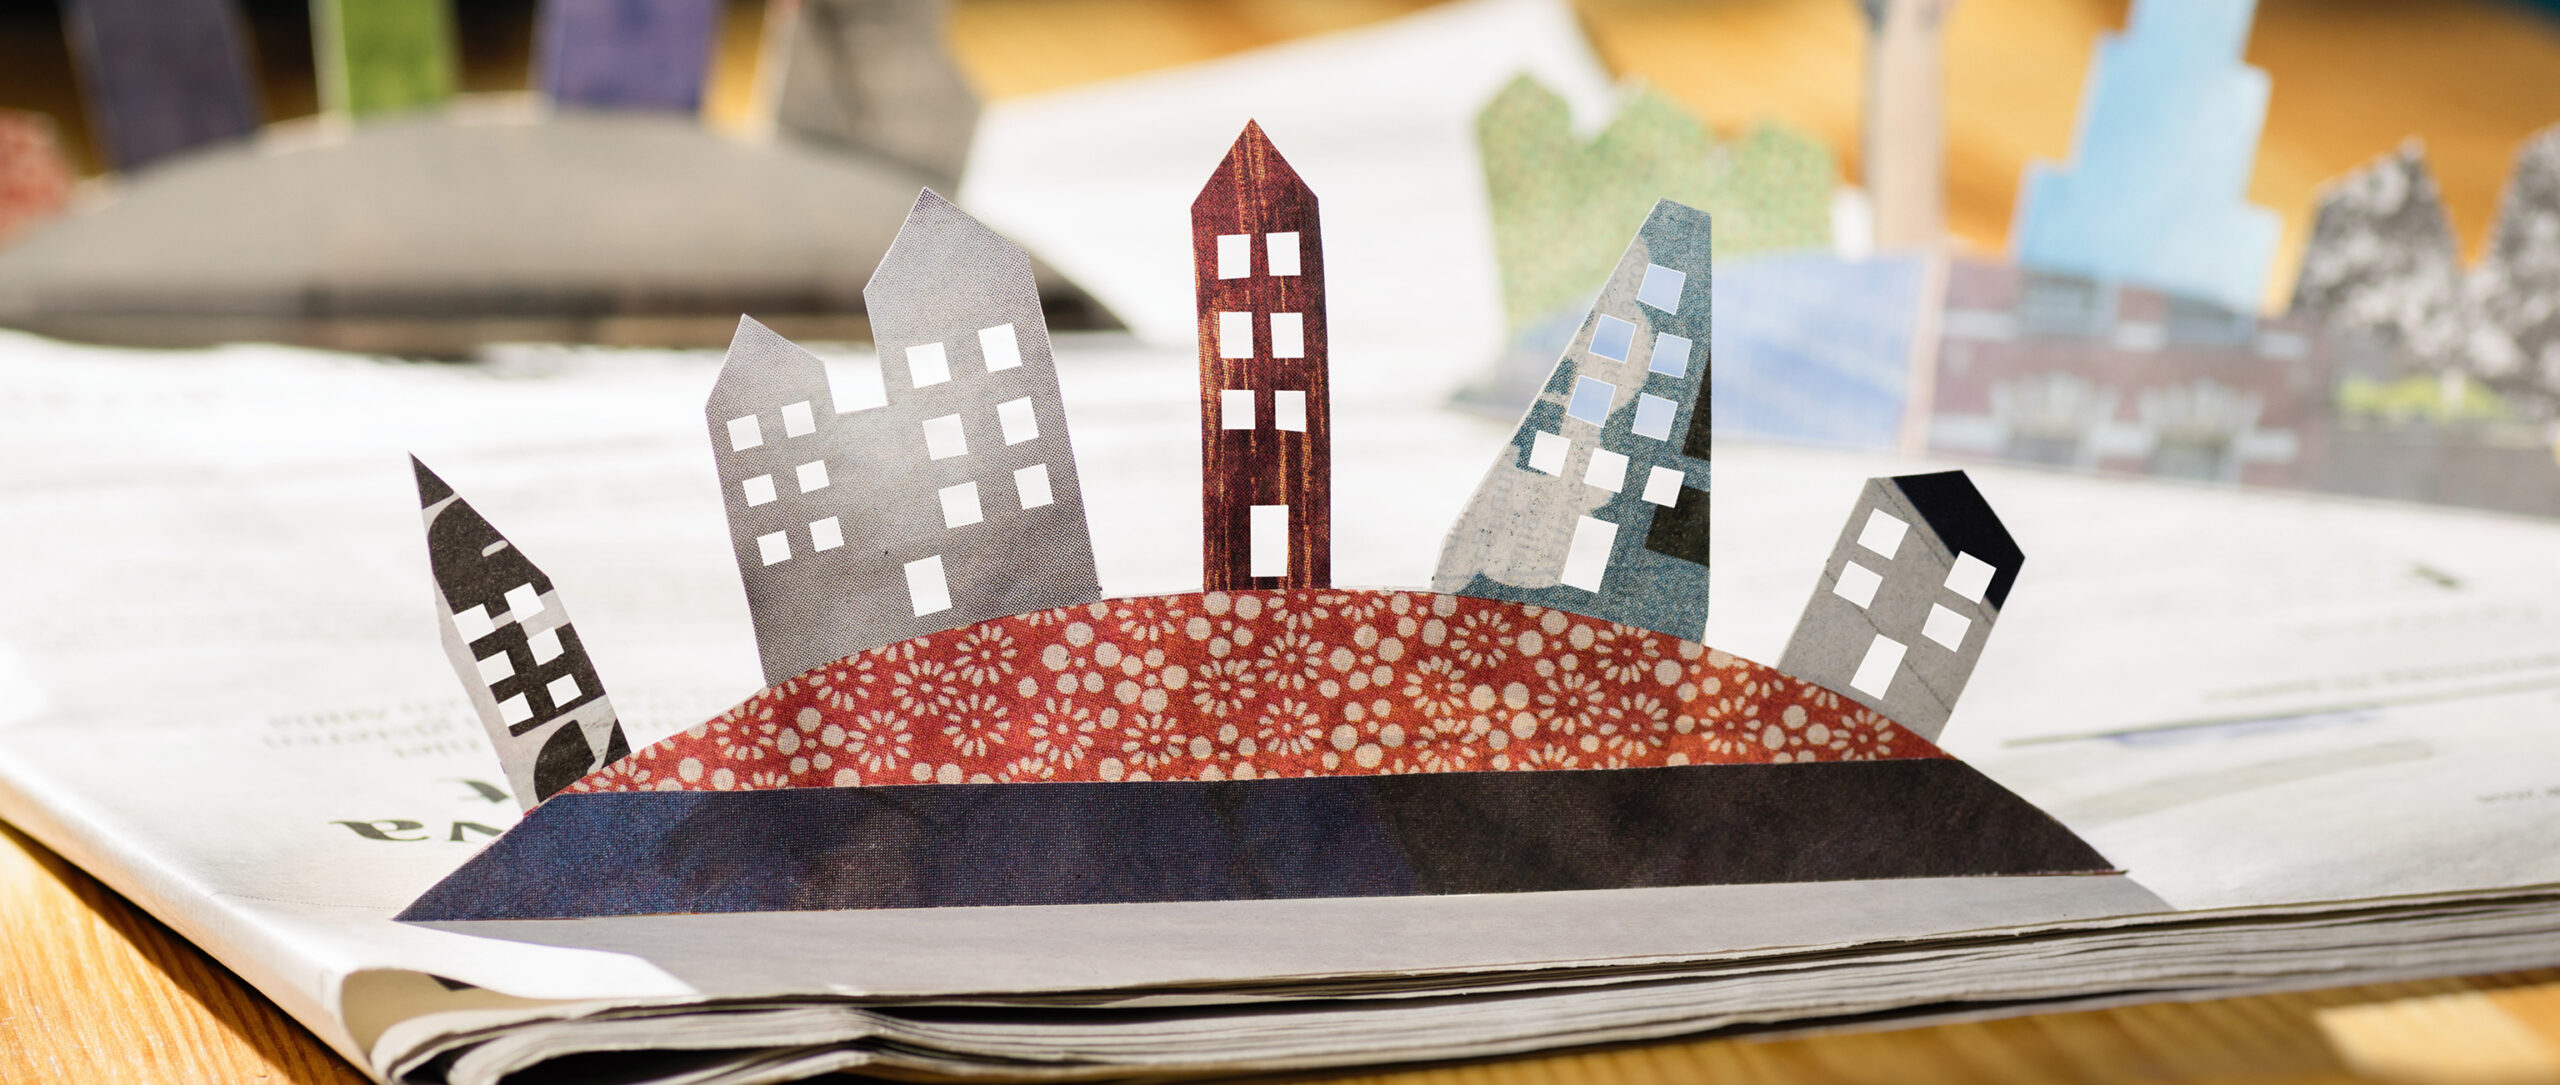 A photo illustration of a paper cutout of an urban street scene